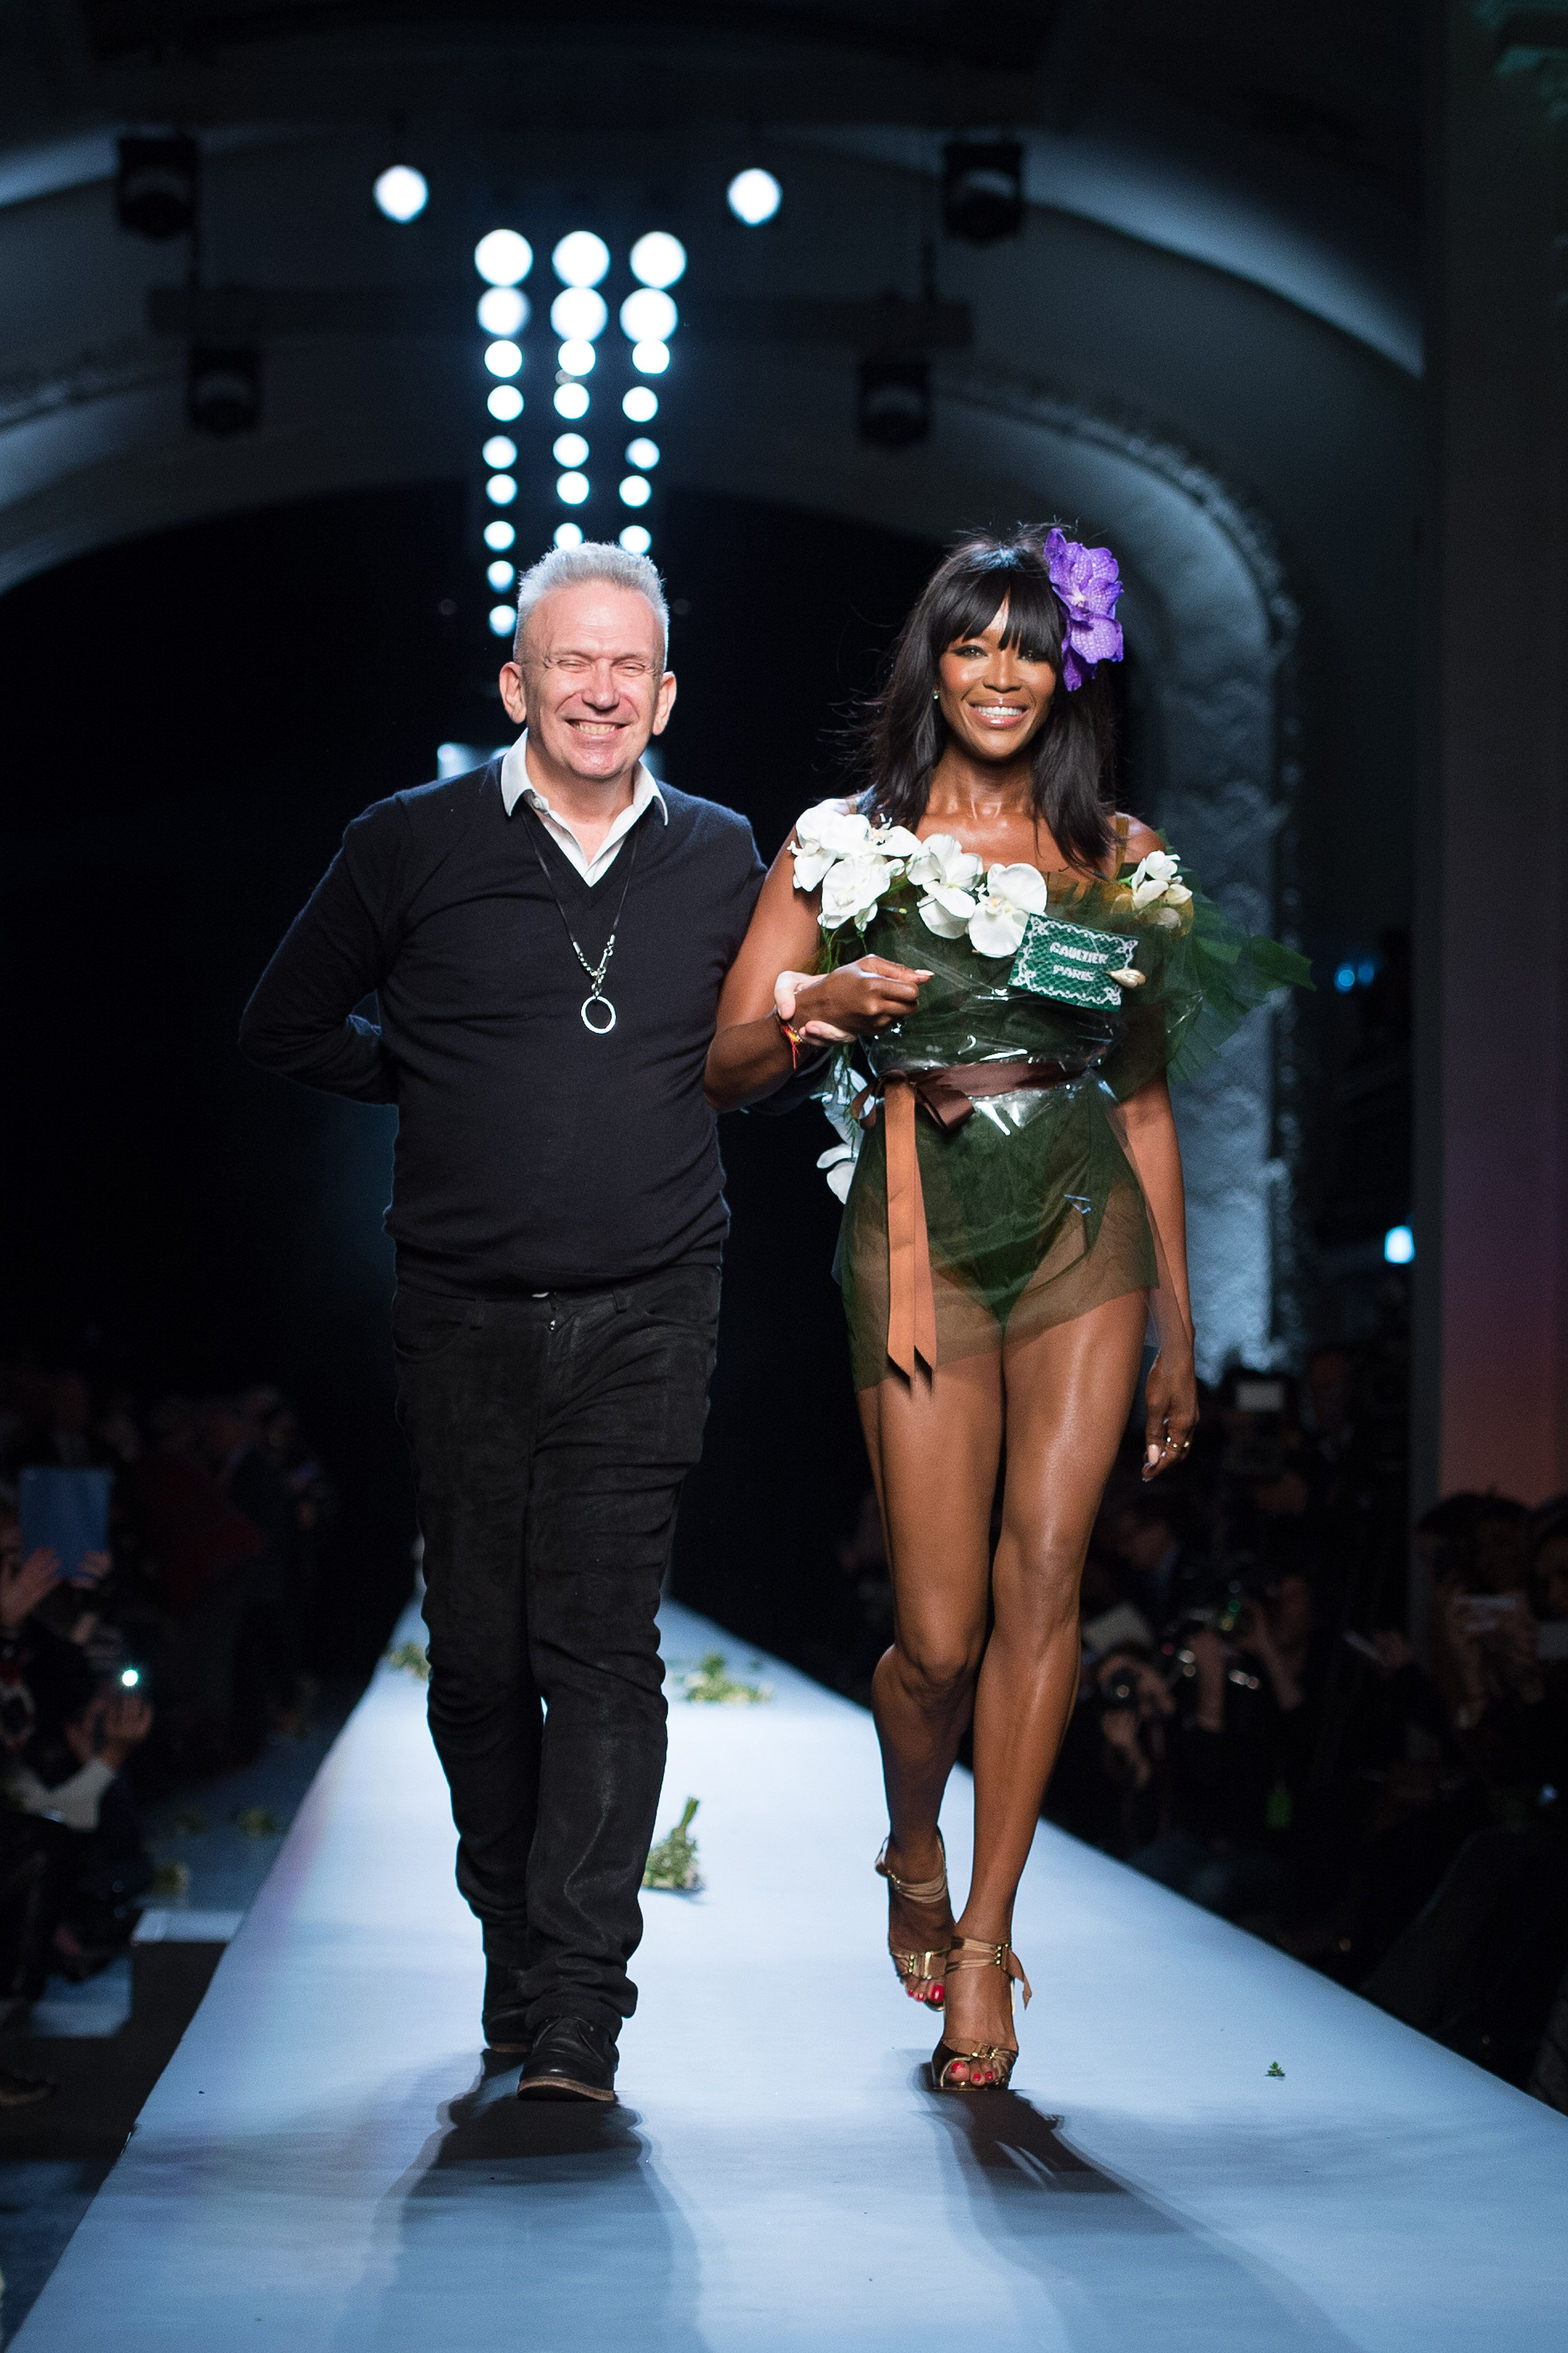 With fashion designer Jean Paul Gaultier at the end of his show as part of Paris Fashion Week.